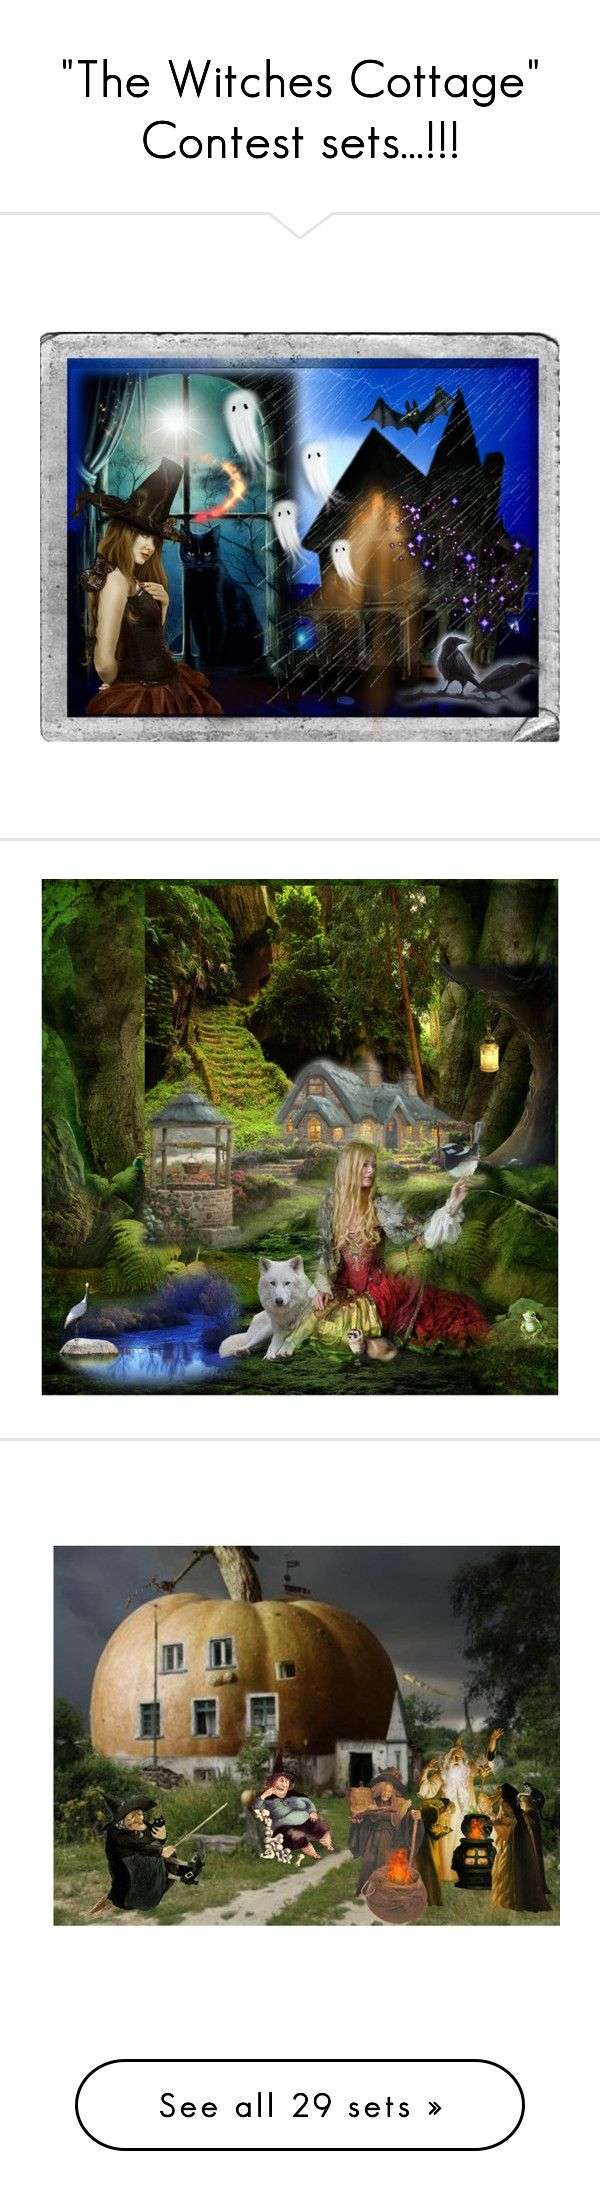 """""The Witches Cottage"" Contest sets...!!!"" by catyravenwood ❤ liked on Polyvore featuring arte, moda, Pinup Couture, Rubie's Costume Co., Chicnova Fashion, Flying Monkey, plus size dresses, artset, ravenwood e interior"